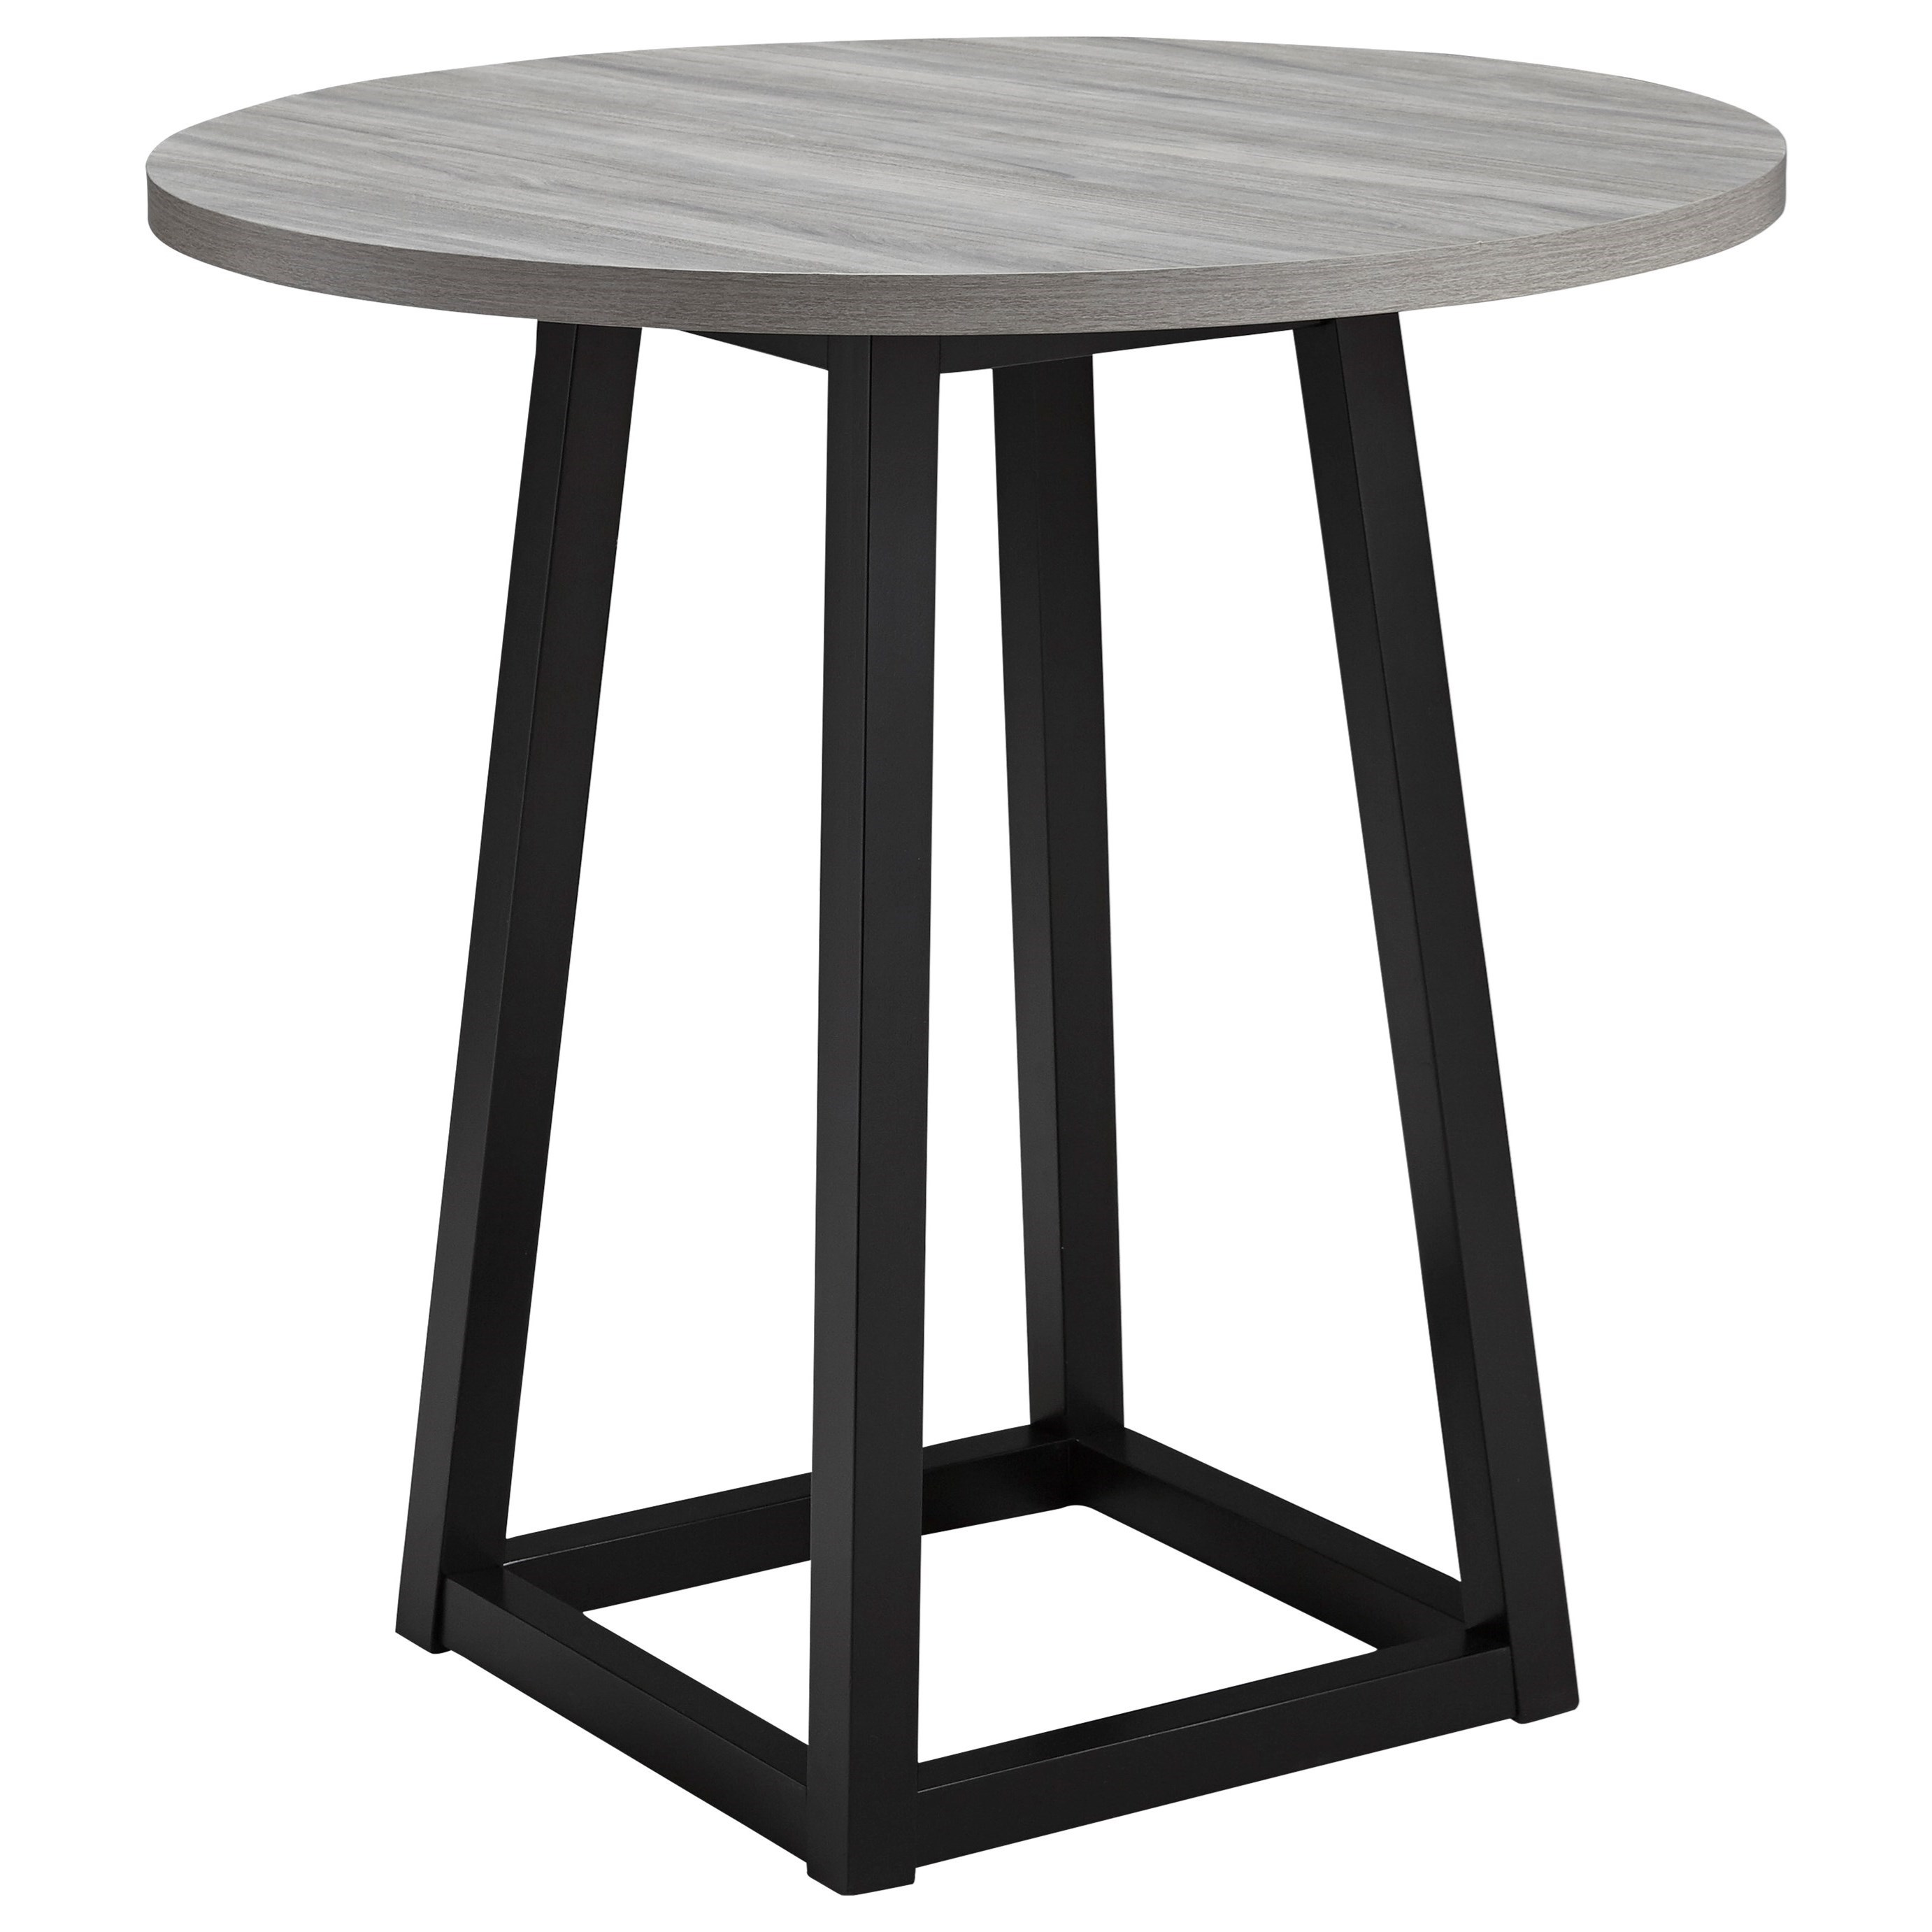 Showdell Round Counter Table by Signature Design by Ashley at HomeWorld Furniture